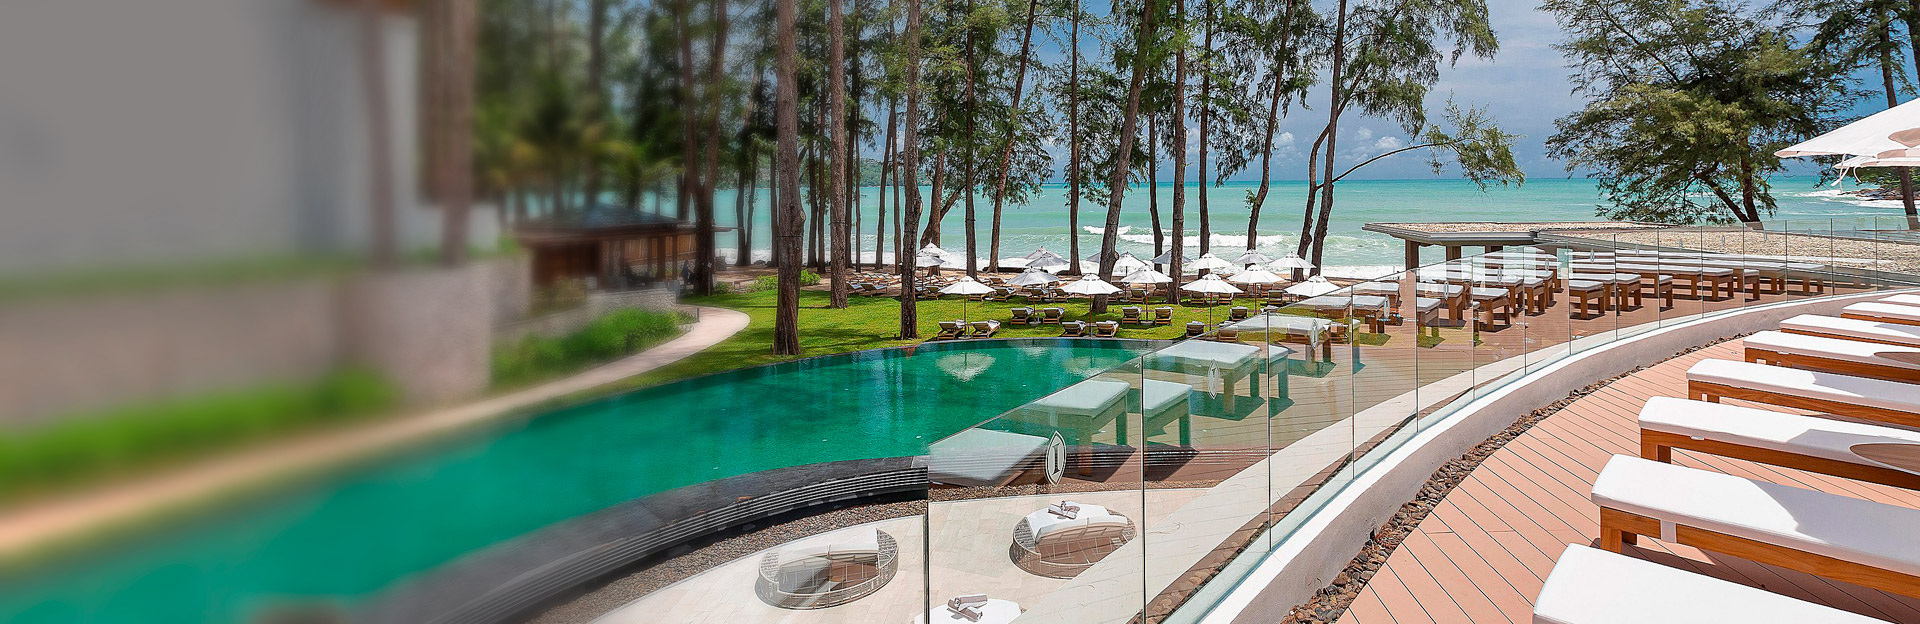 Intercontinental Phuket